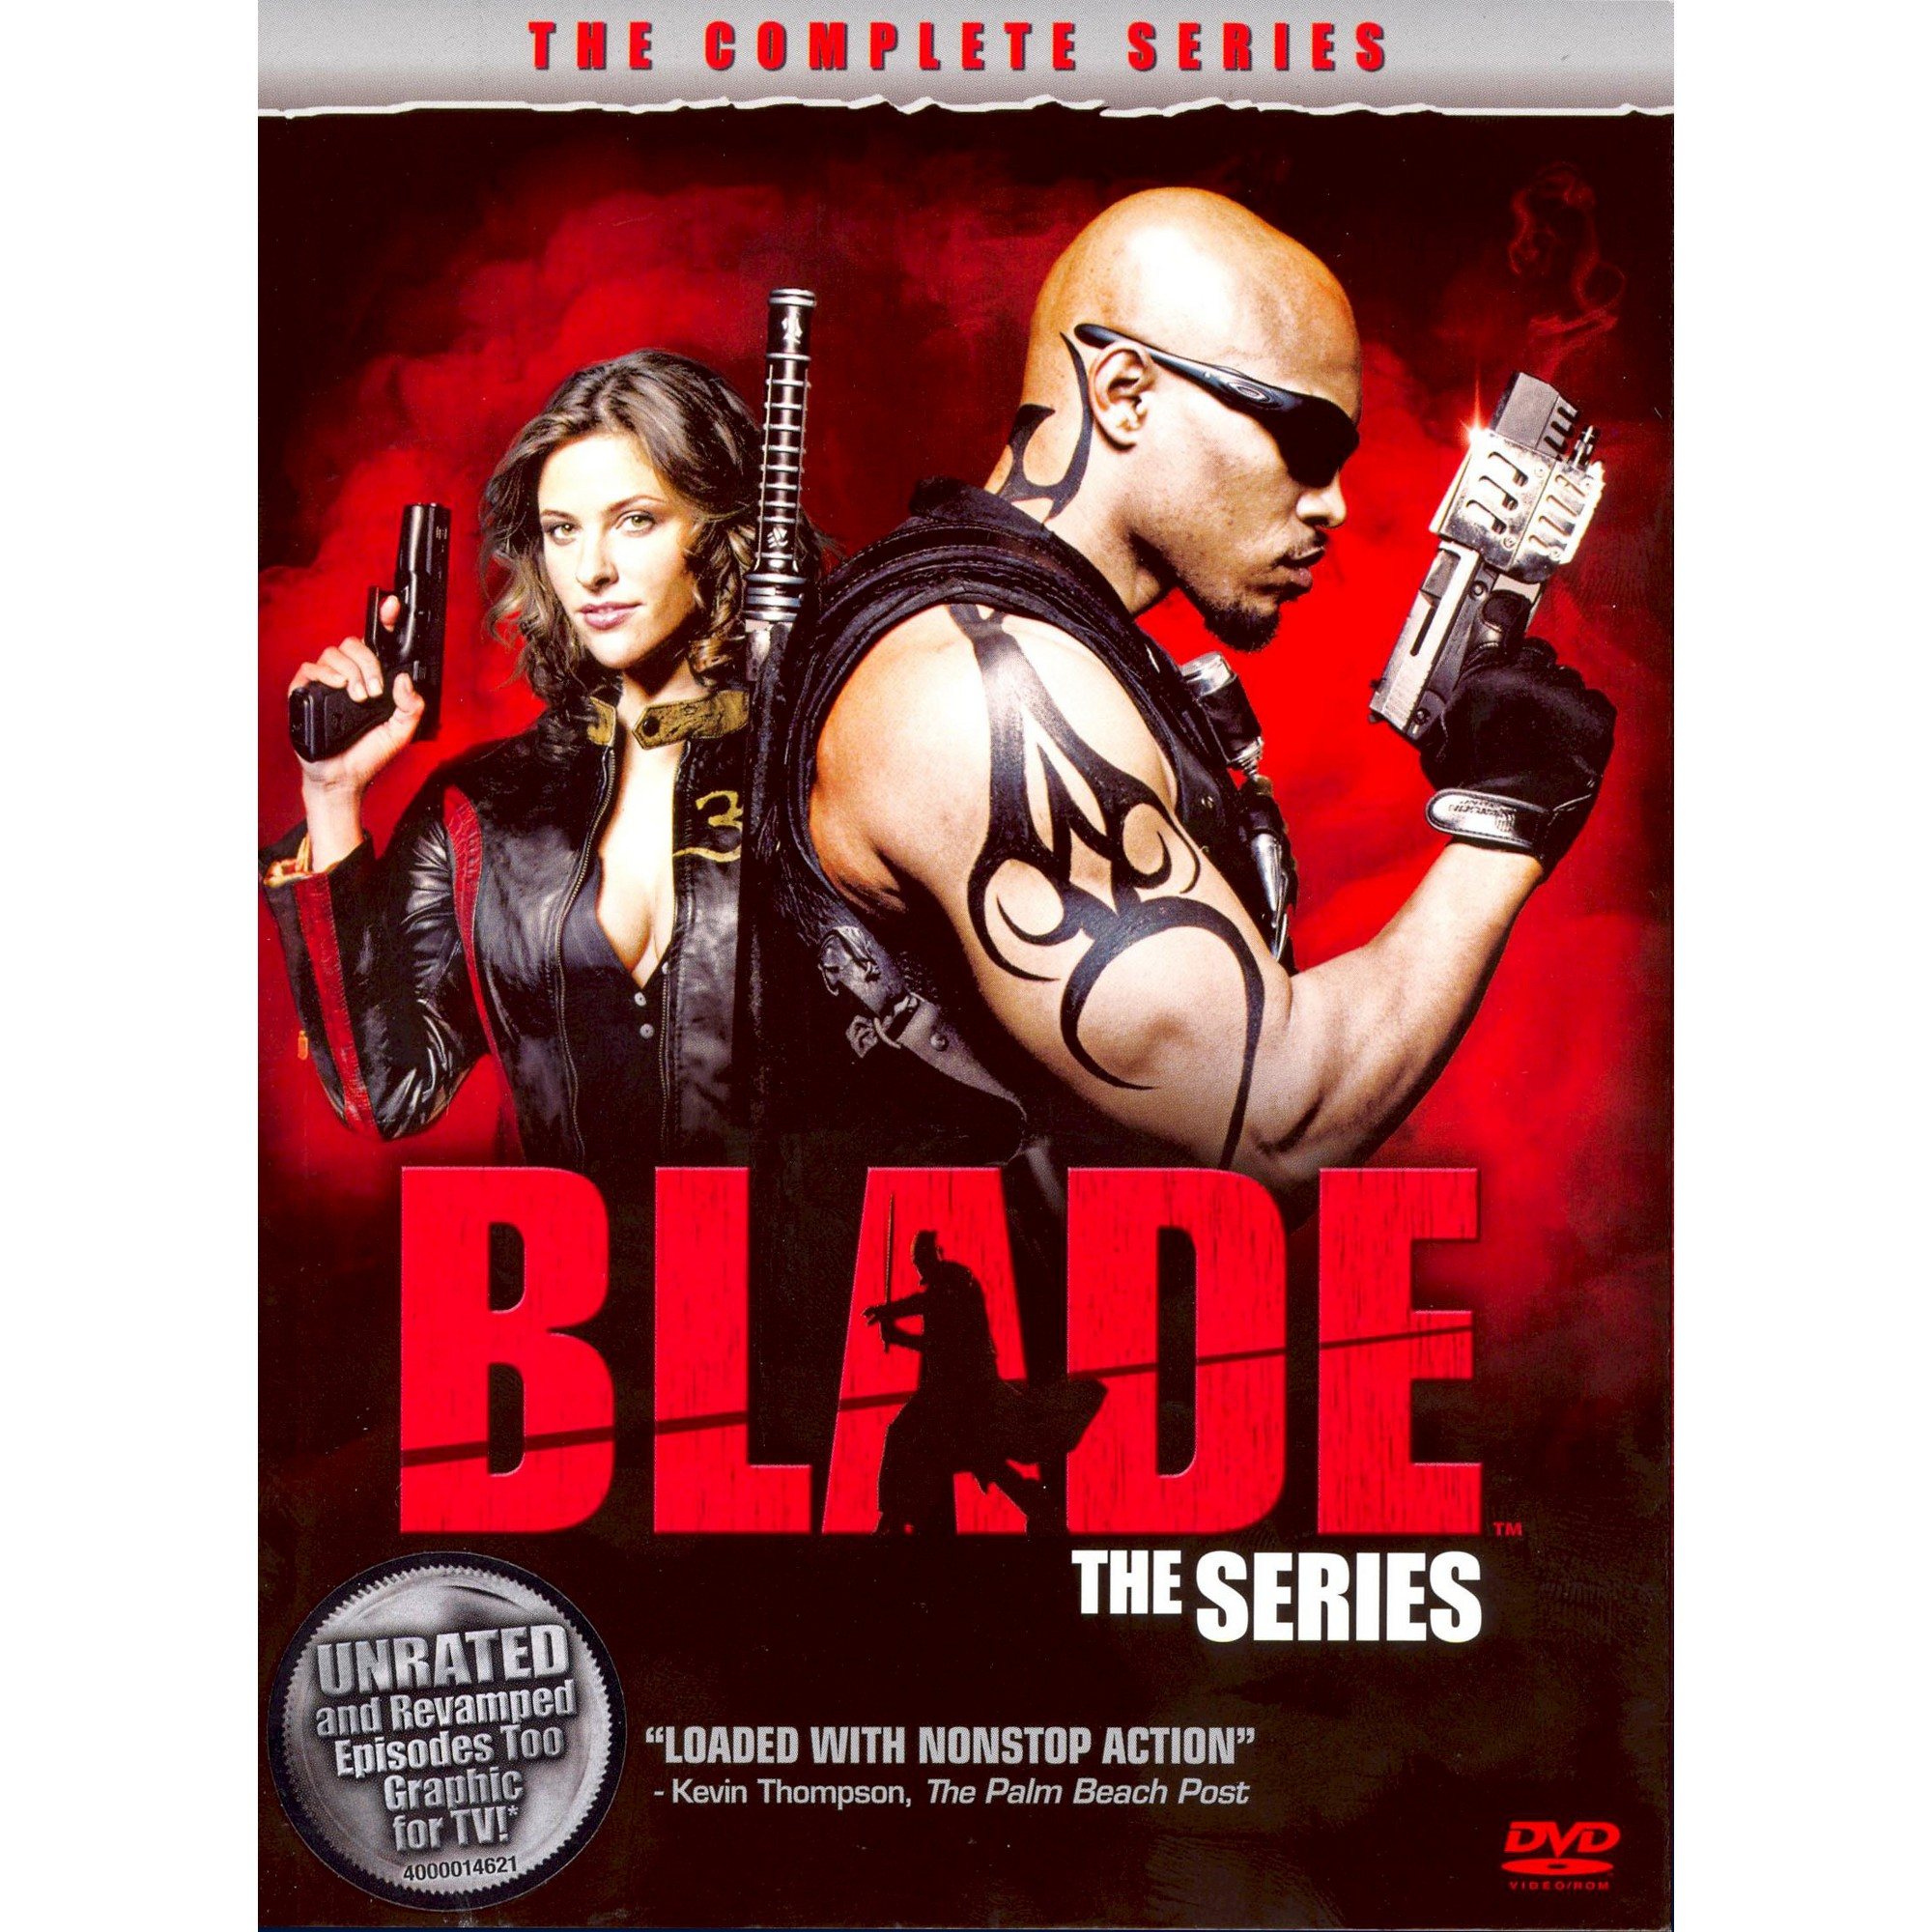 Blade The Series: The Complete Series (Dvd)